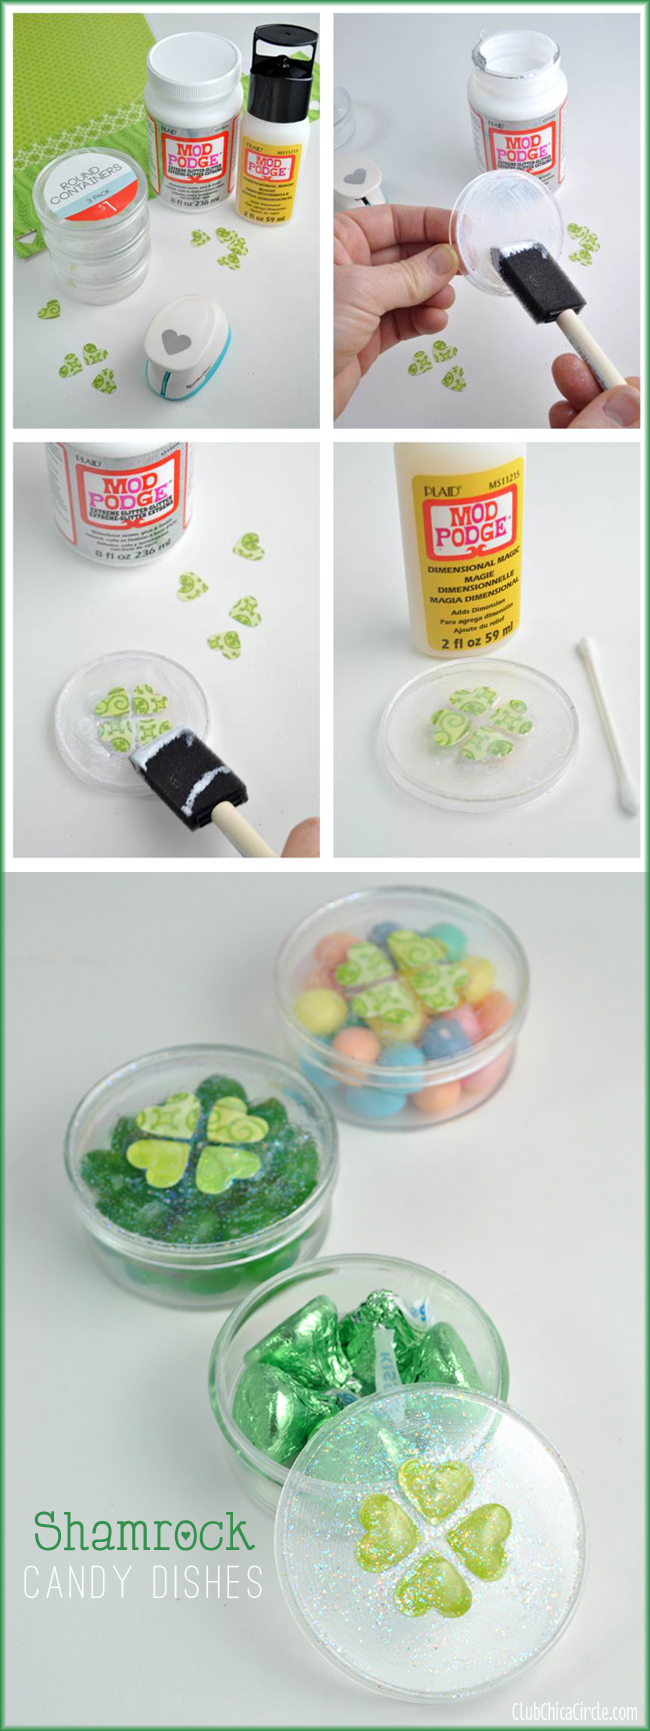 Easy shamrock candy dish craft idea with Mod Podge